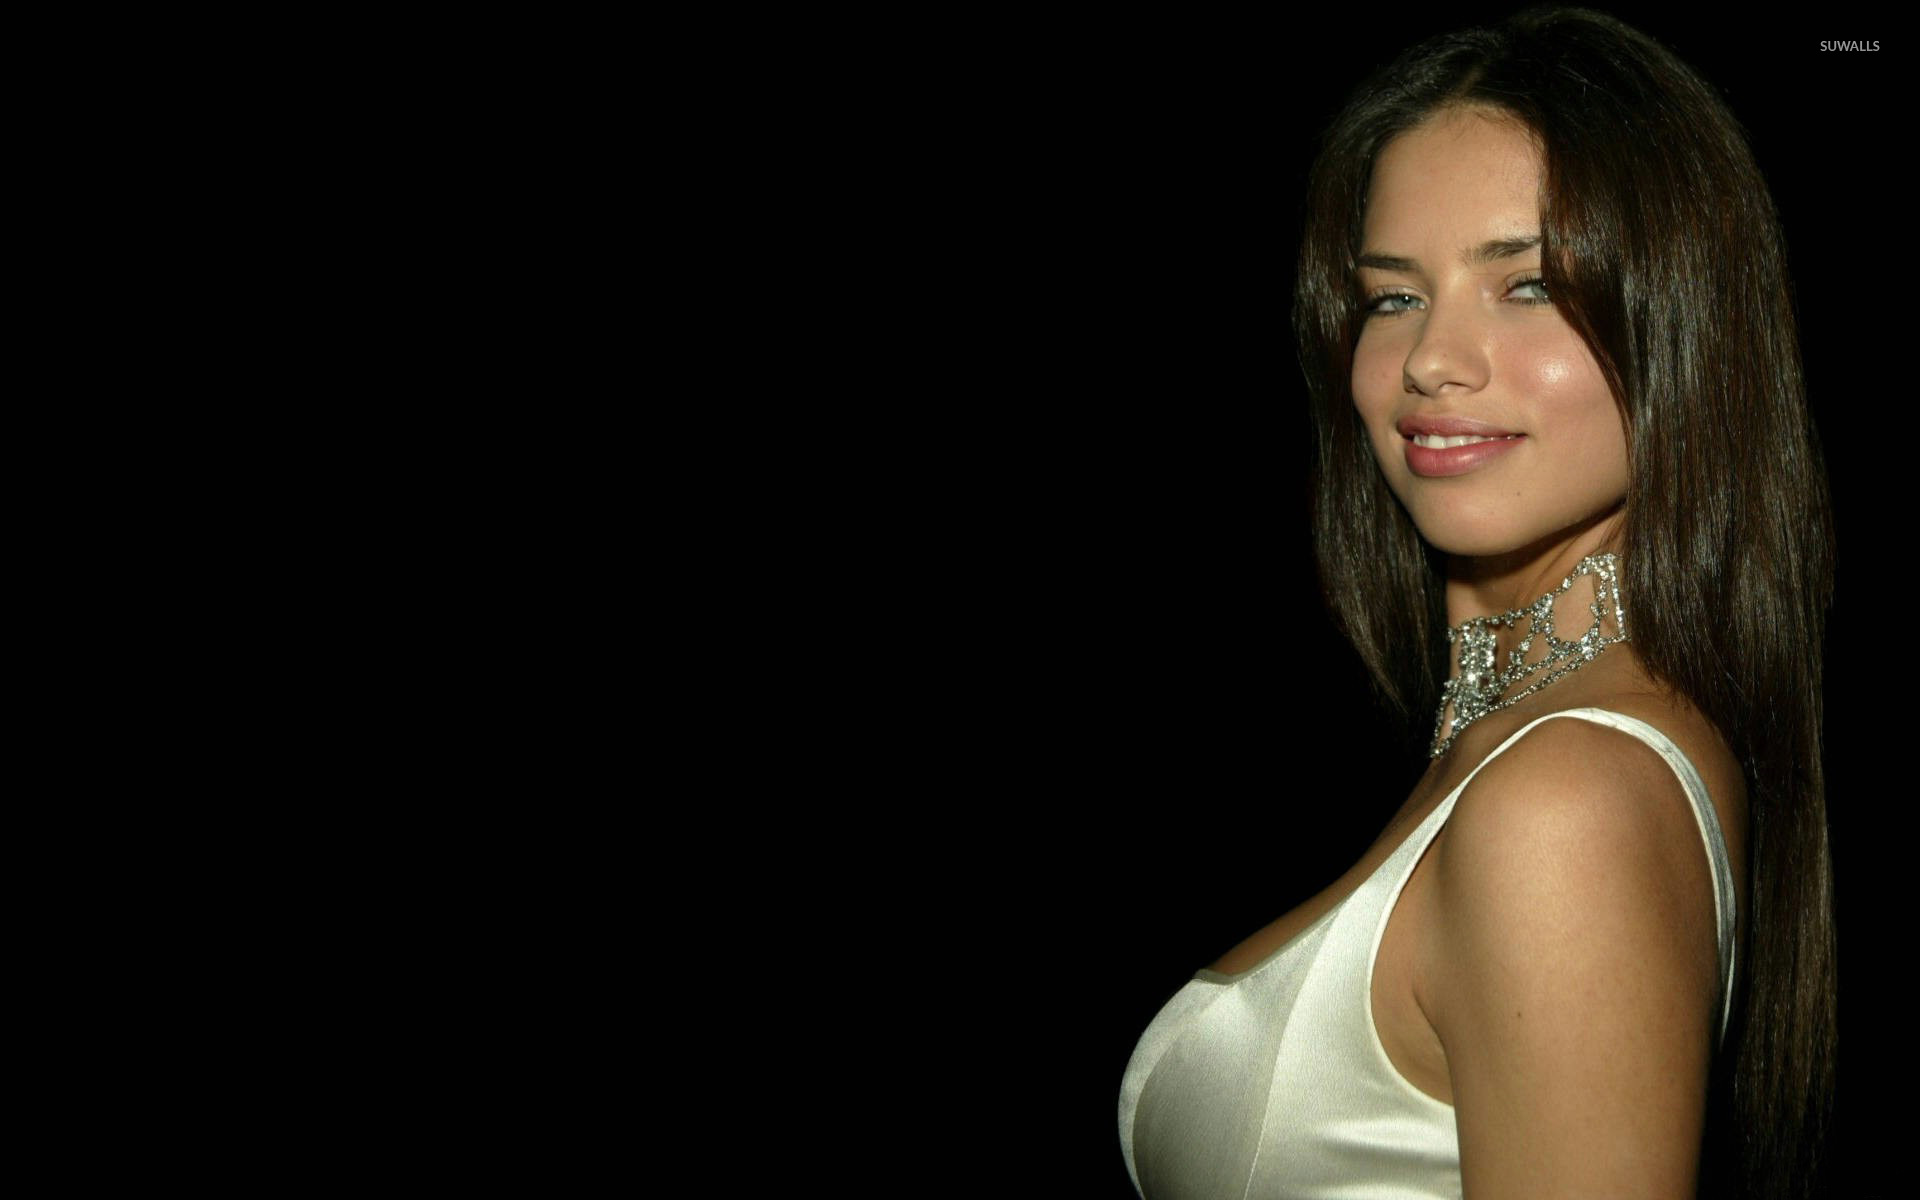 Adriana lima 37 wallpaper girl wallpapers 4998 adriana lima 37 wallpaper voltagebd Gallery